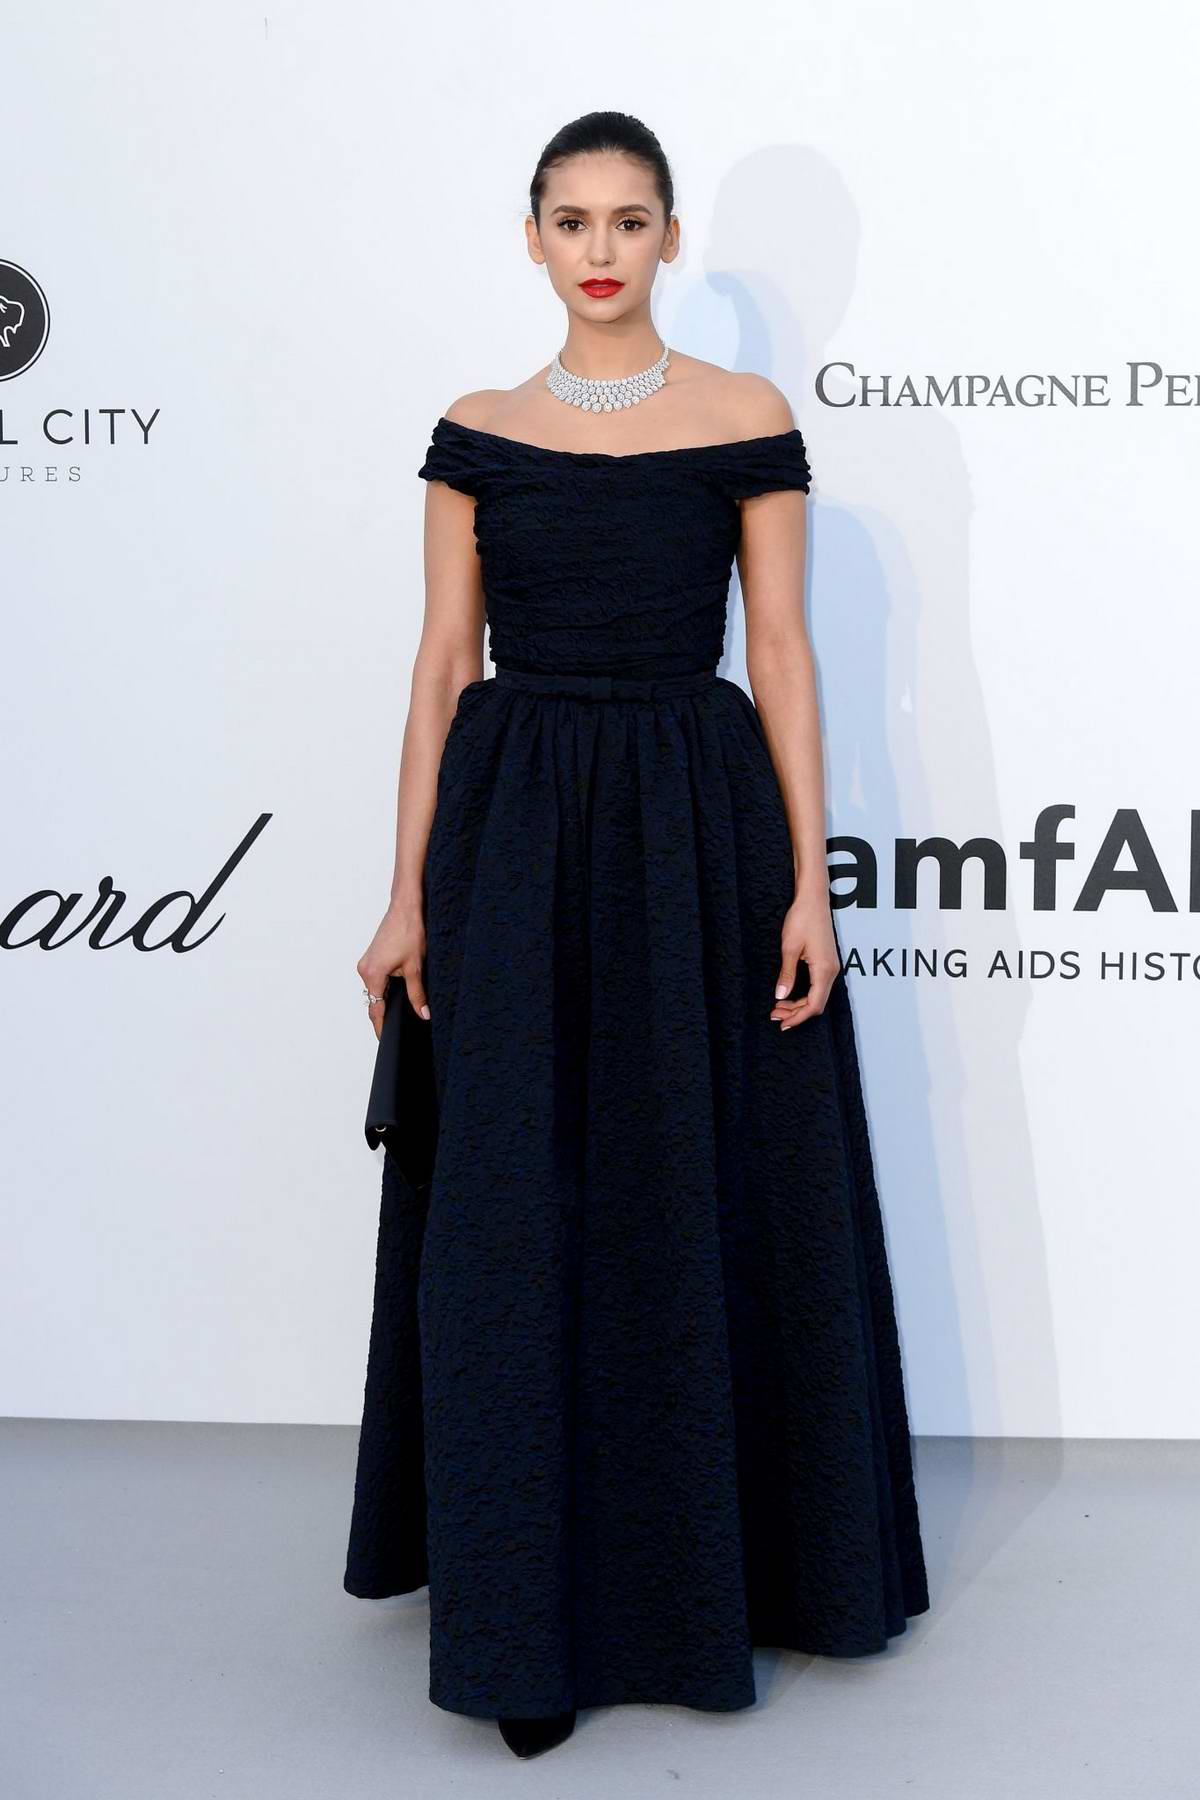 Nina Dobrev attends the 26th amfAR Gala held at Hotel du Cap-Eden-Roc during the 72nd annual Cannes Film Festival in Cannes, France